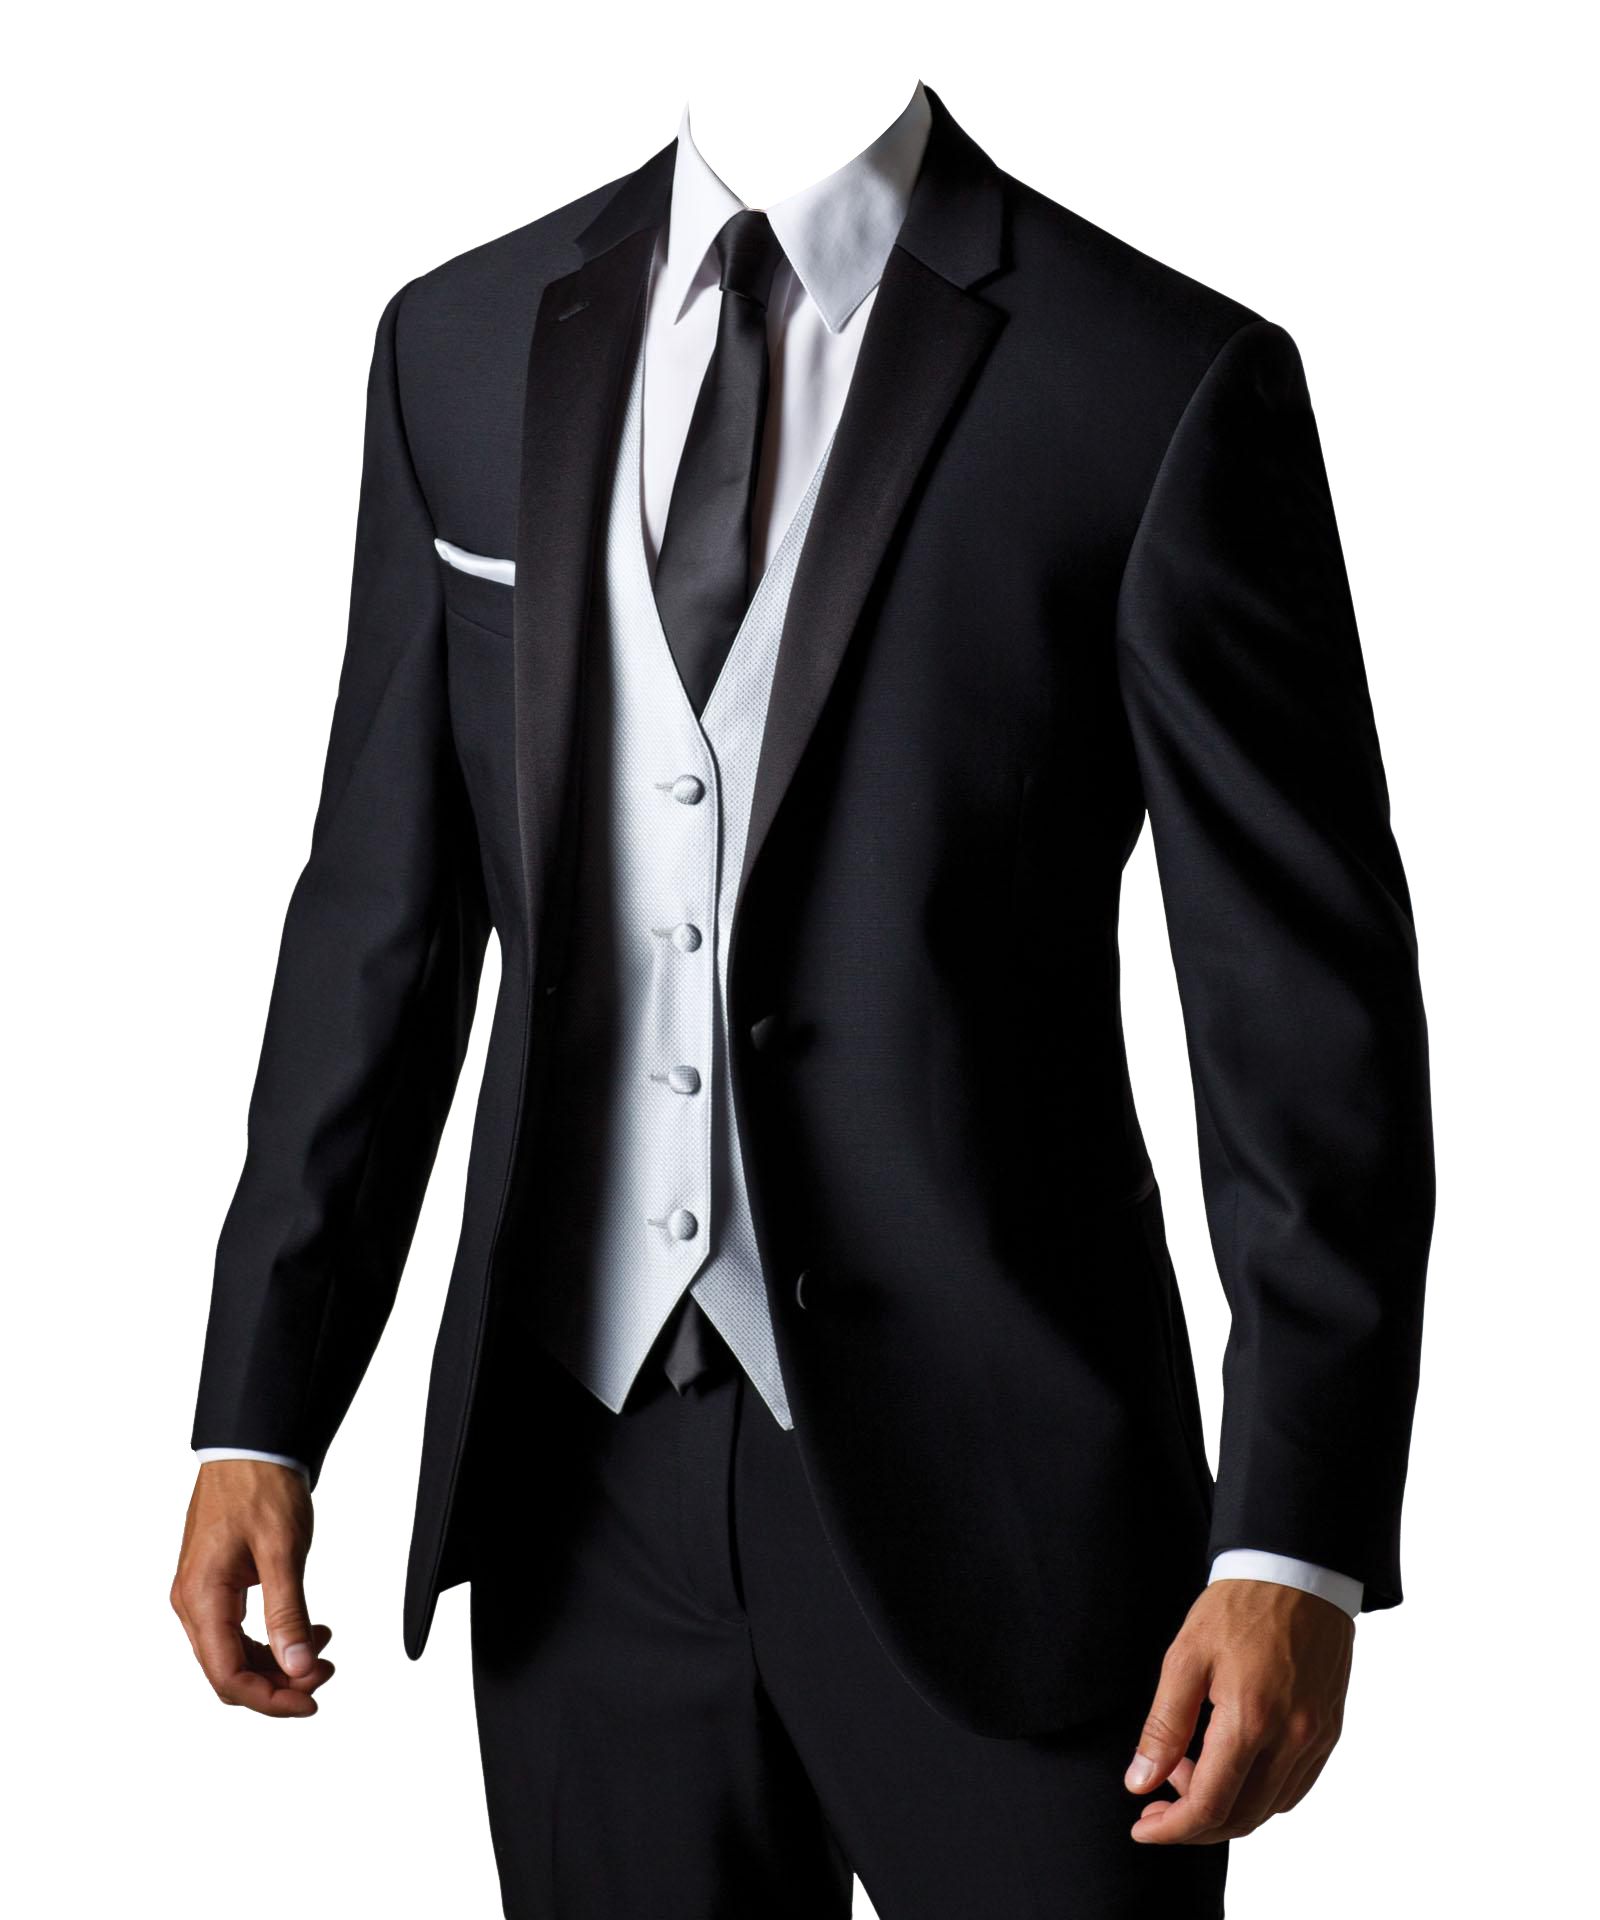 Suit PNG Transparent Image - Coat PNG HD